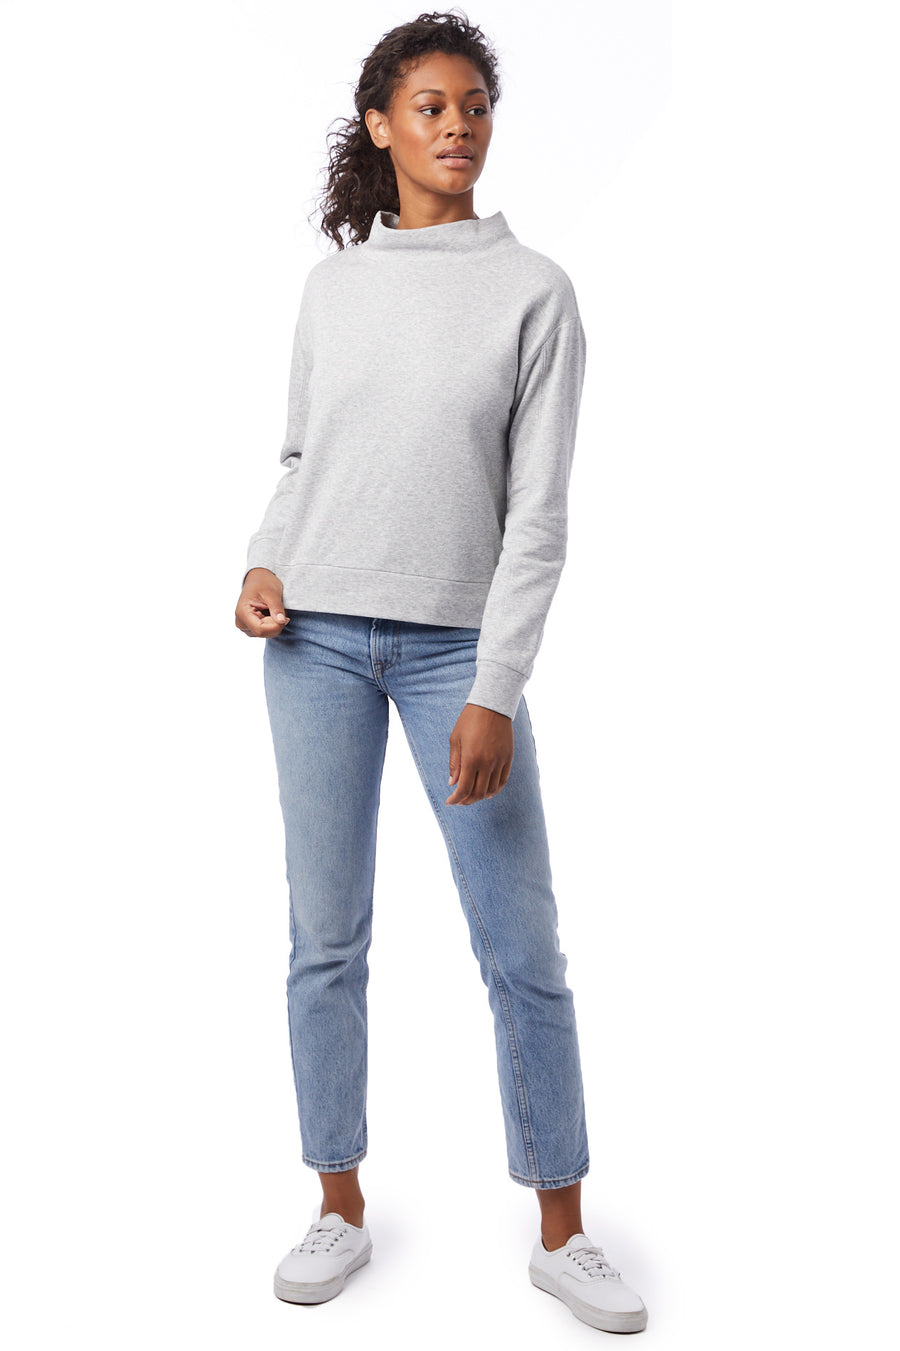 Mock Turtleneck Pullover - Heather Grey - Pavilion